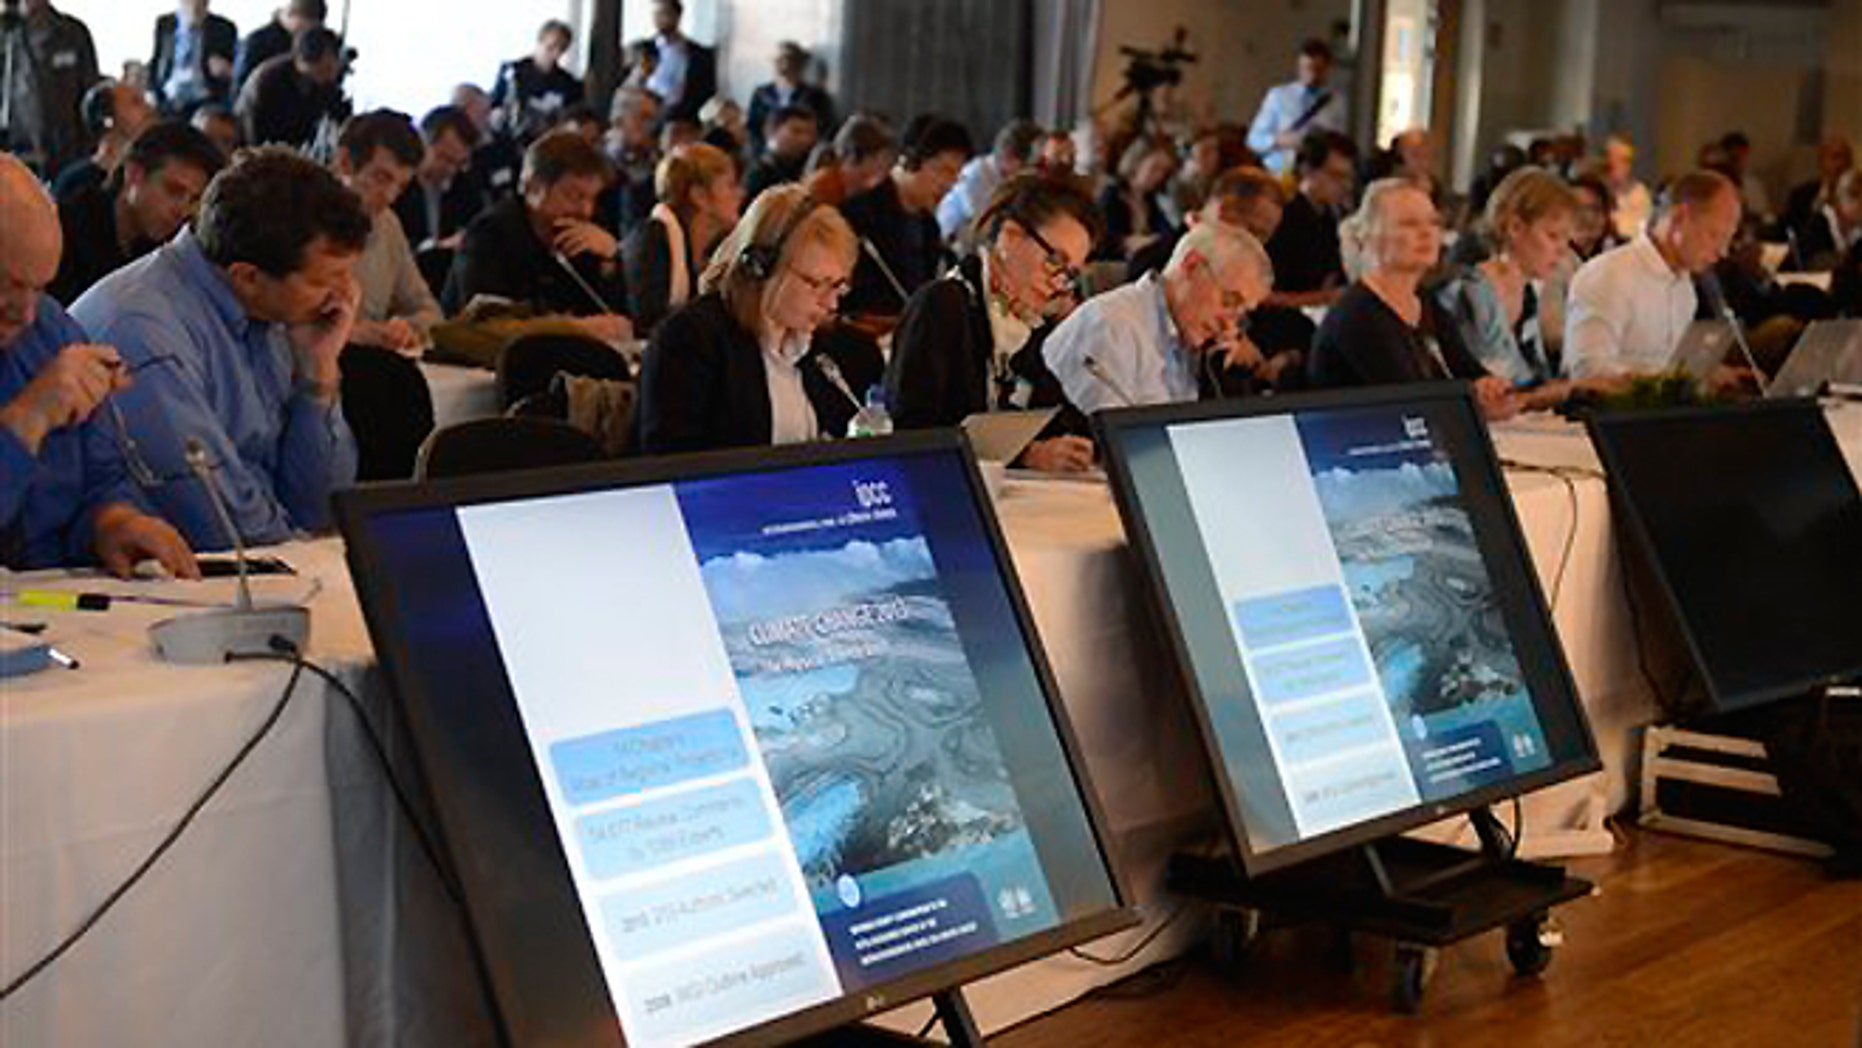 Sept. 27, 2013: Media representatives follow the U.N. IPCC climate report presentation, in Stockholm.